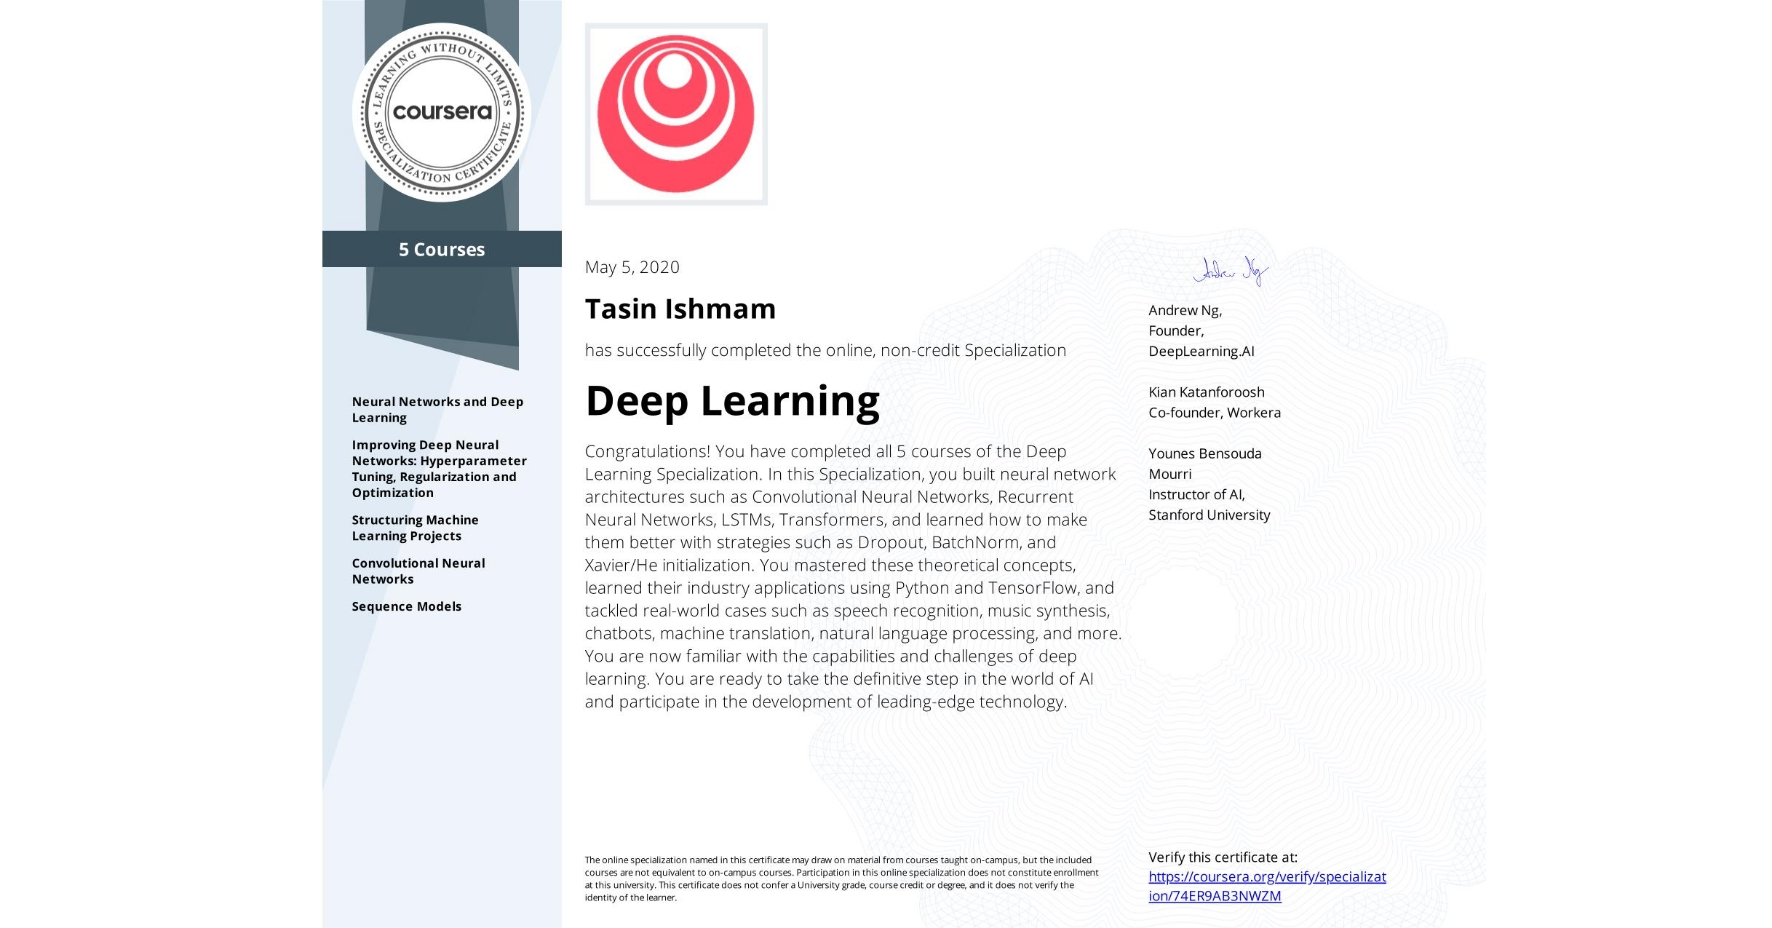 View certificate for Tasin Ishmam, Deep Learning, offered through Coursera. The Deep Learning Specialization is designed to prepare learners to participate in the development of cutting-edge AI technology, and to understand the capability, the challenges, and the consequences of the rise of deep learning. Through five interconnected courses, learners develop a profound knowledge of the hottest AI algorithms, mastering deep learning from its foundations (neural networks) to its industry applications (Computer Vision, Natural Language Processing, Speech Recognition, etc.).